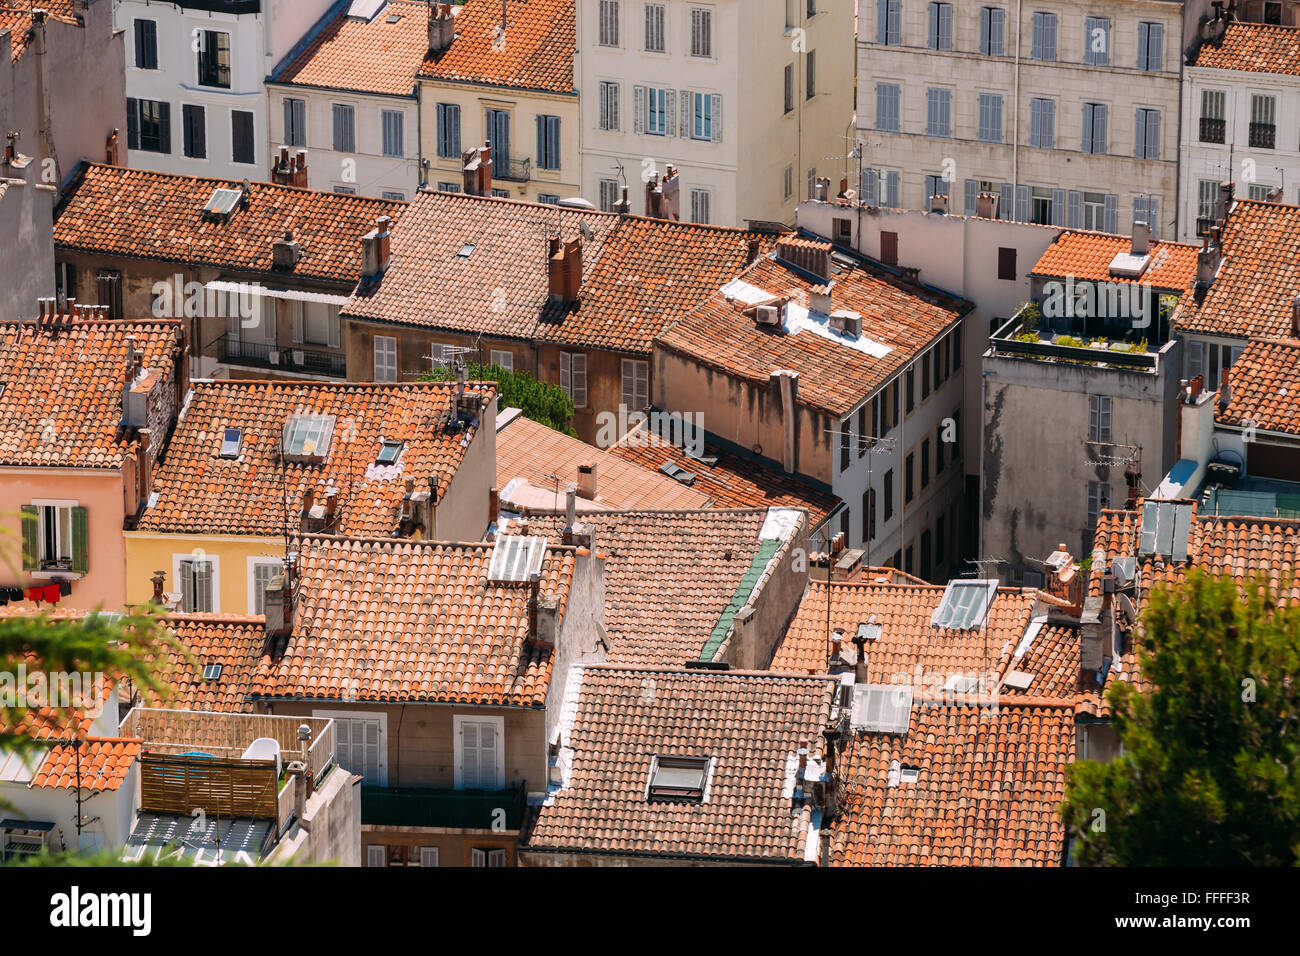 View of the old tiled roofs in Marseille, France. - Stock Image